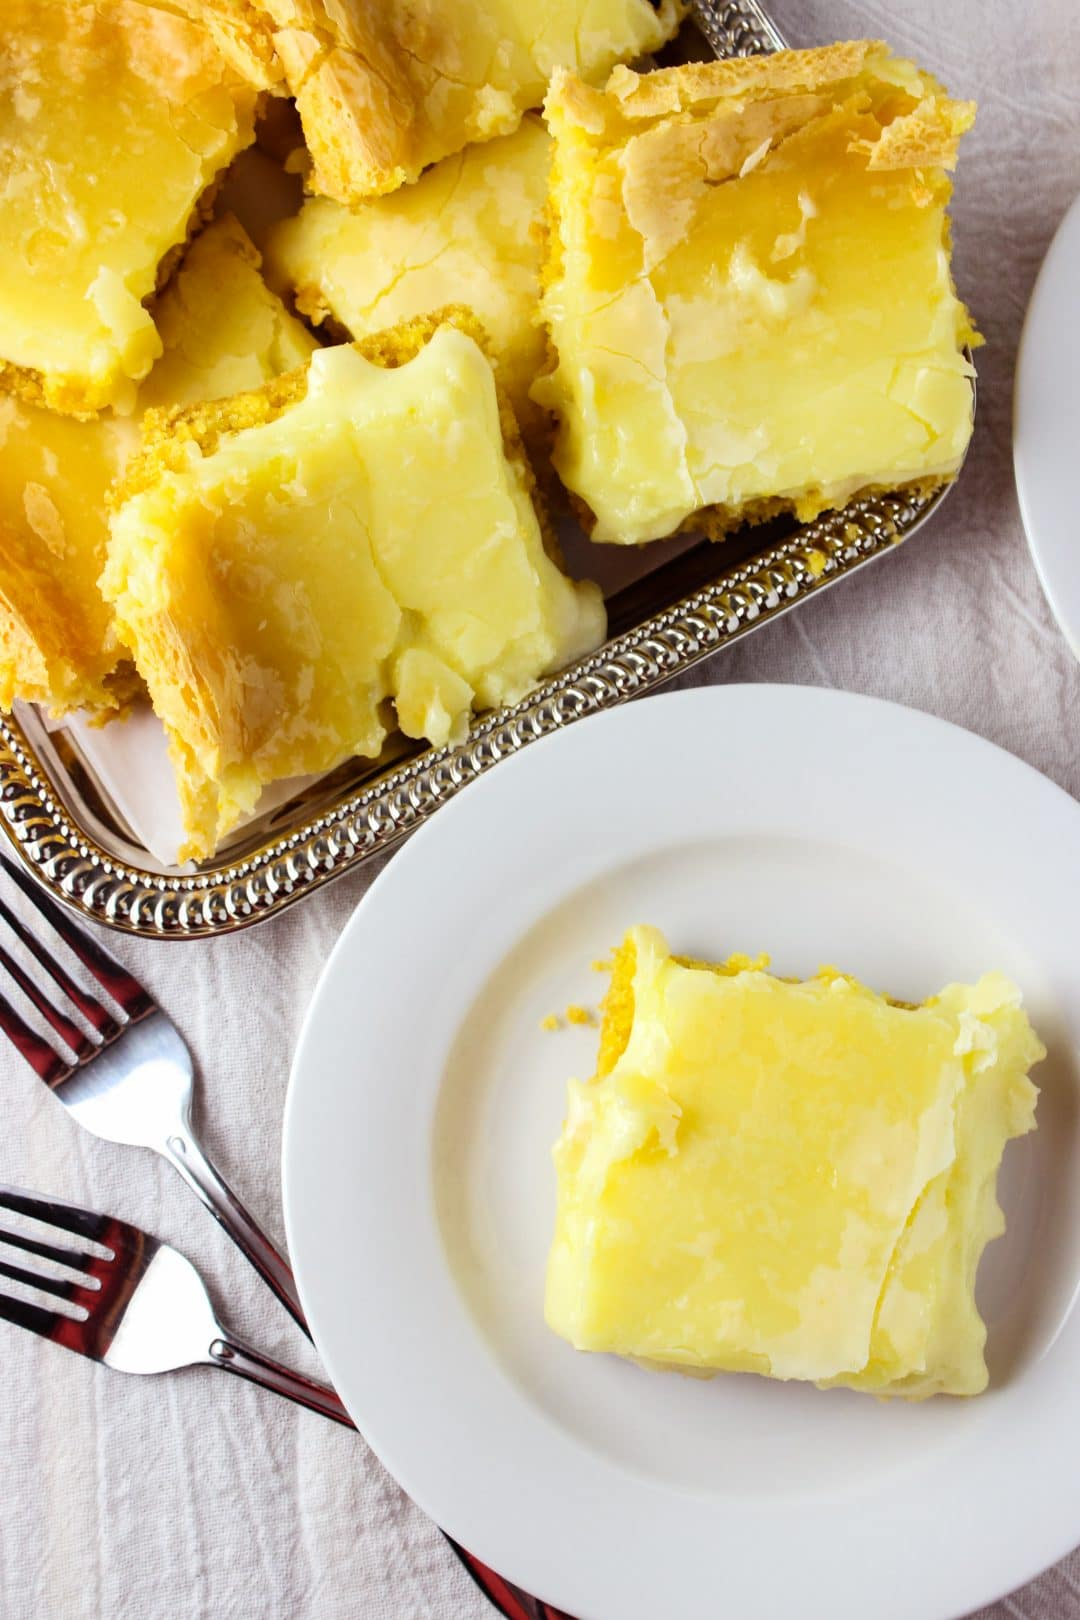 Easy Chess Squares - A Southern Staple made using only 5 simple ingredients which are cake mix, cream cheese, butter, eggs, and sugar. This recipe creates a dessert that is so Good and Sweet that you must give it a try! simplylakita.com #dessert